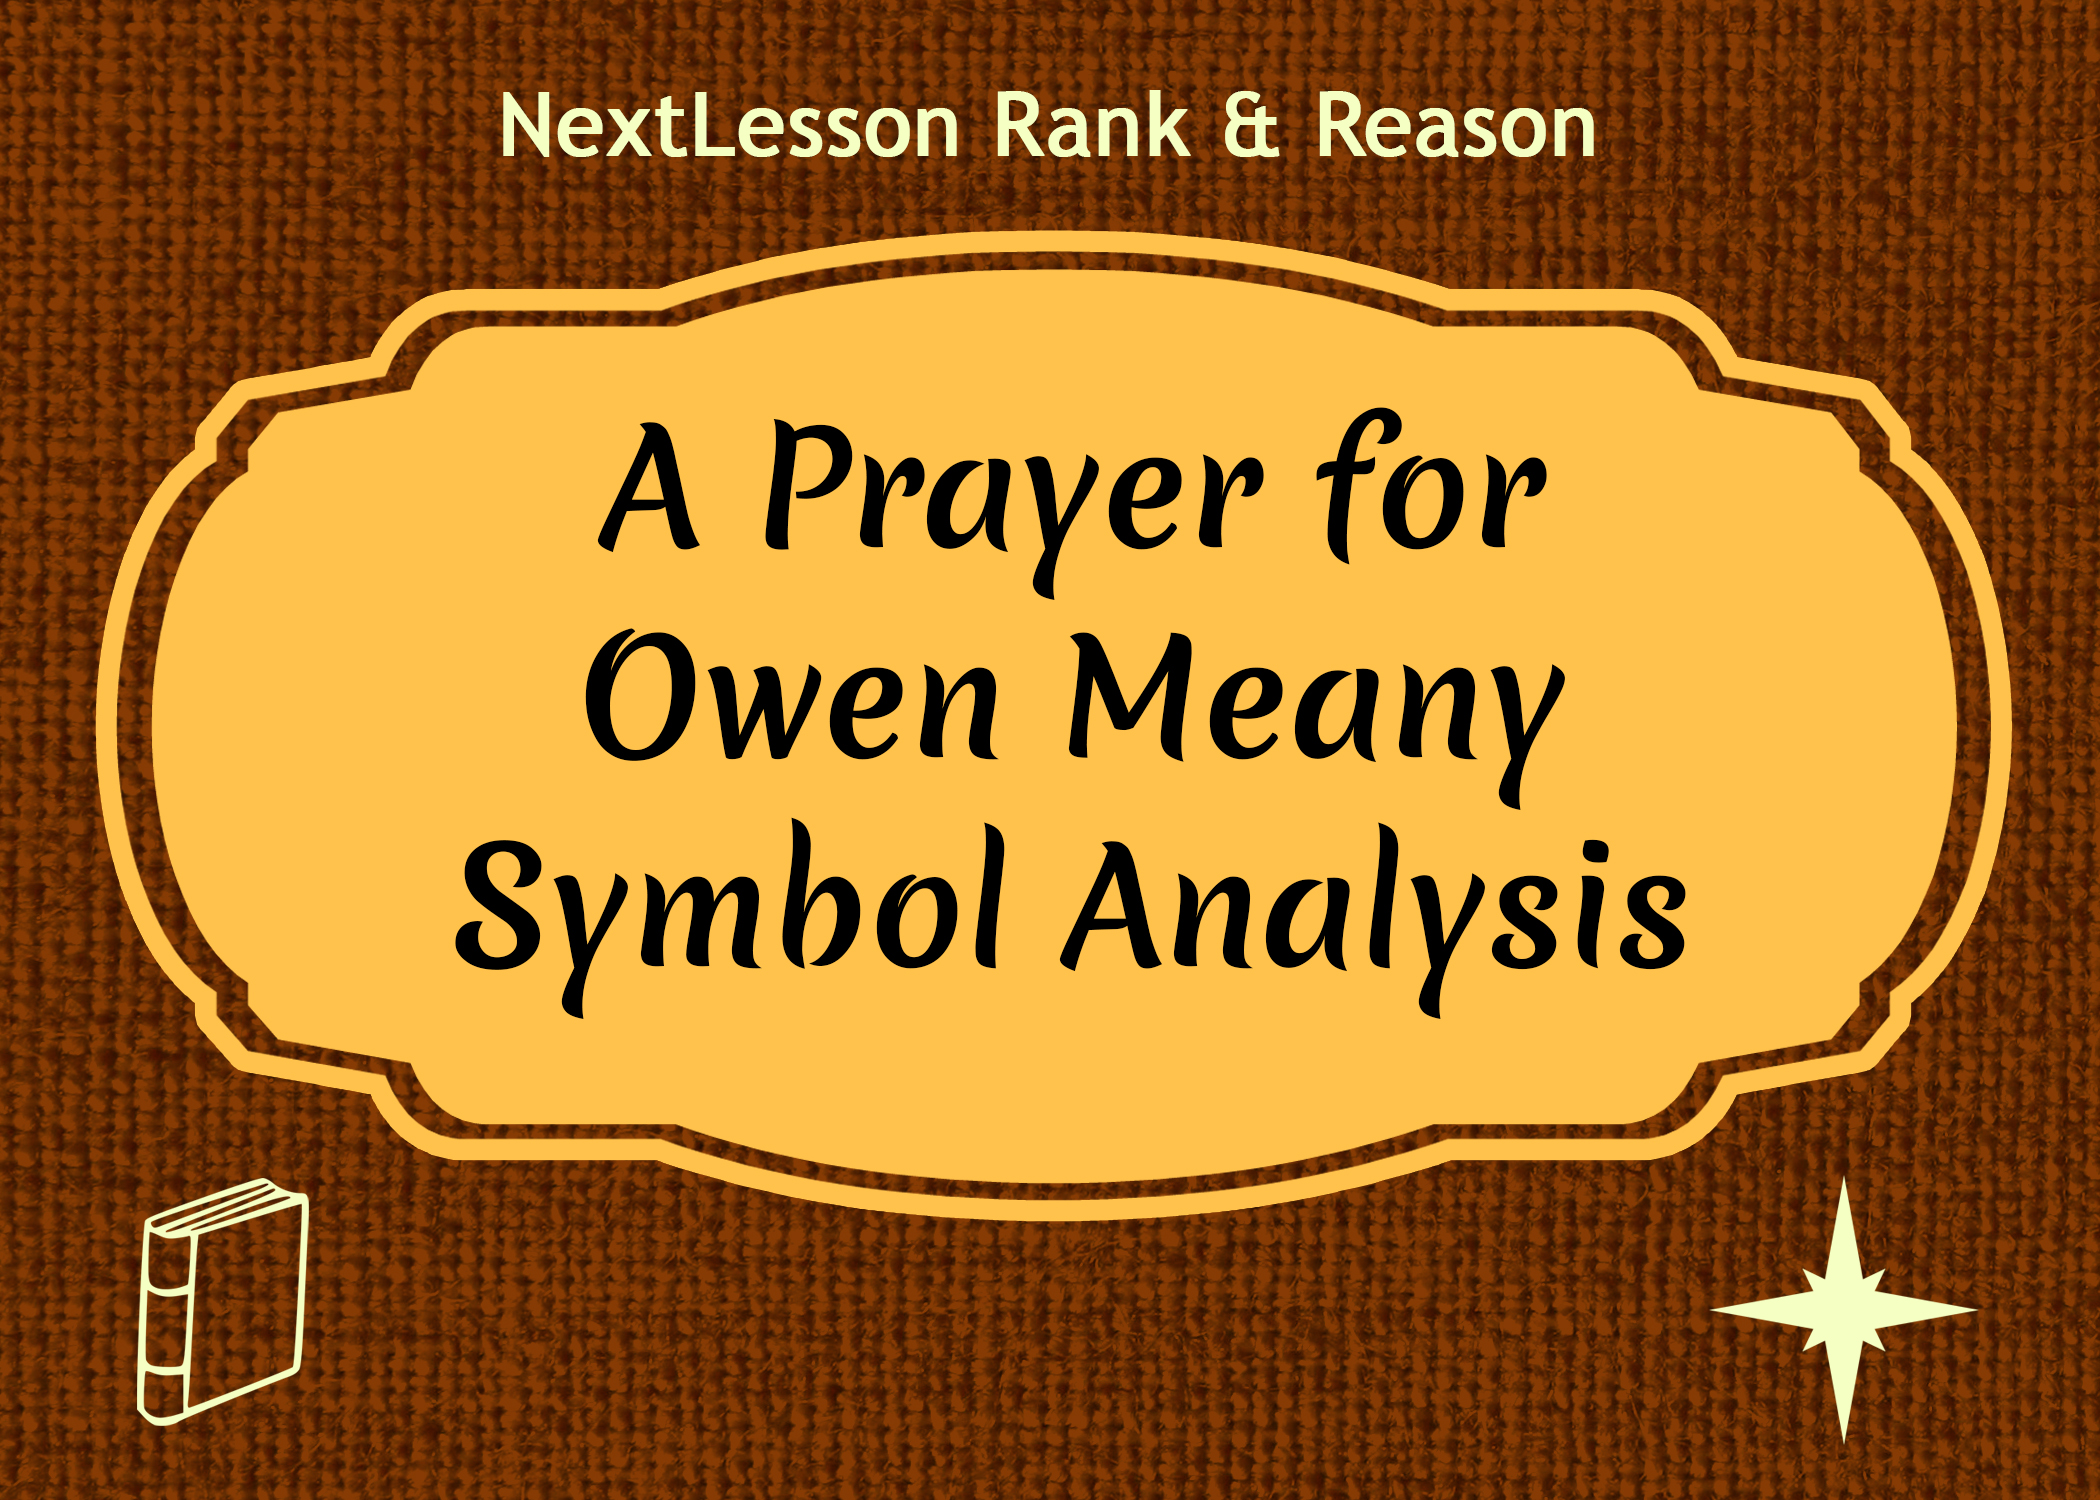 owen meany symbolism The economical/political social background of the story a prayer for owen meany by john irving had a huge impact on the characters and the p.